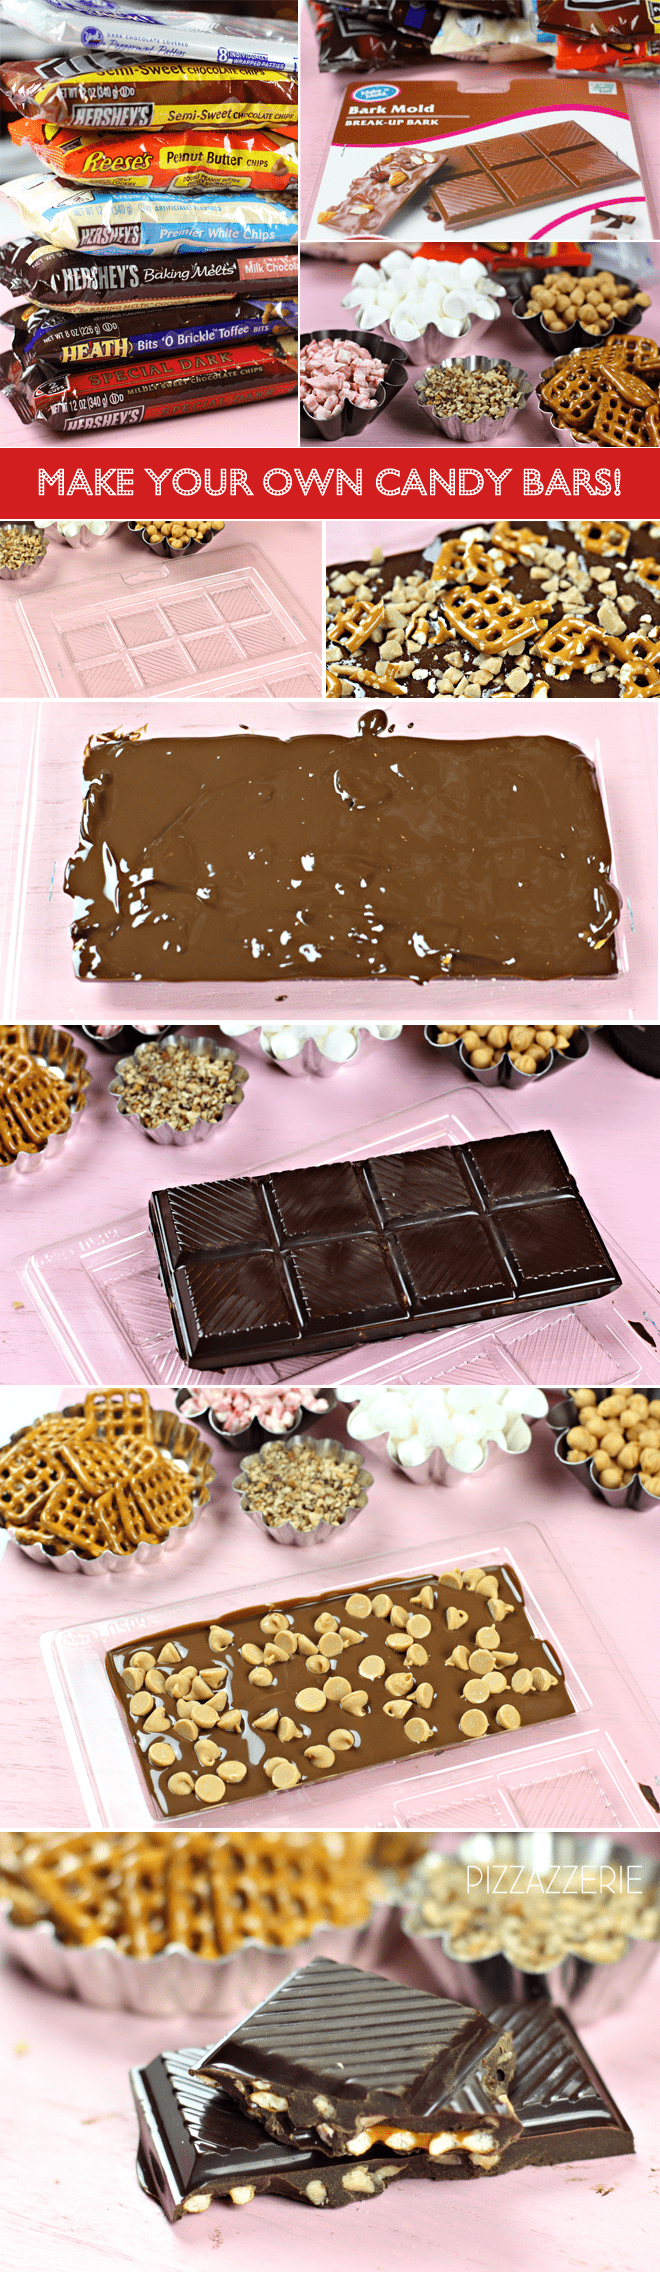 How to Make Your Own Candy Bar   Tutorial   Pizzazzerie.com